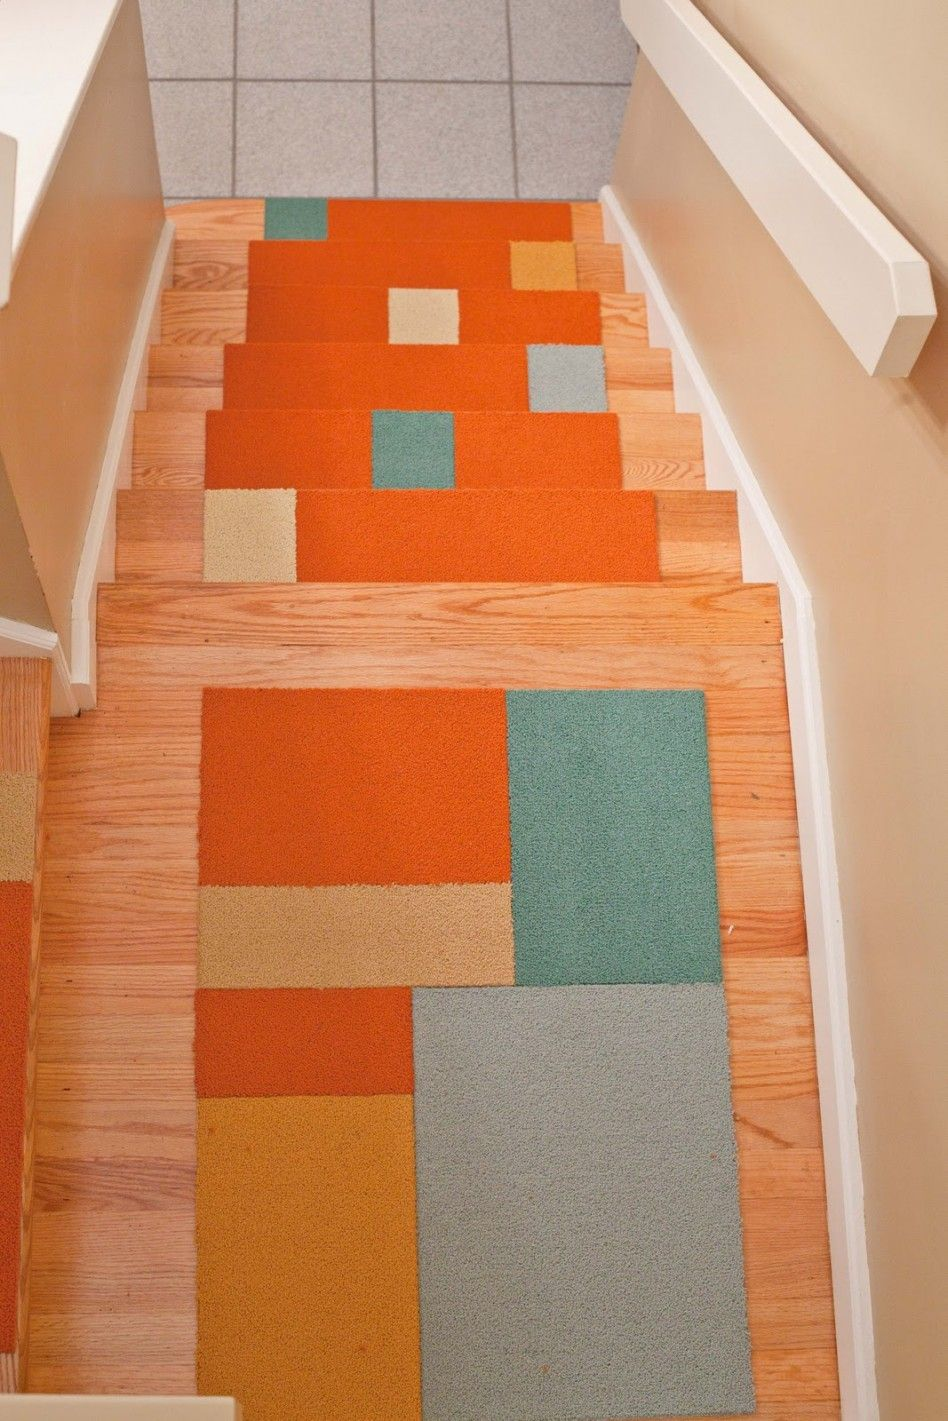 Flor tiles on stairs inspiration for calvert lane pinterest flor tiles on stairs dailygadgetfo Images